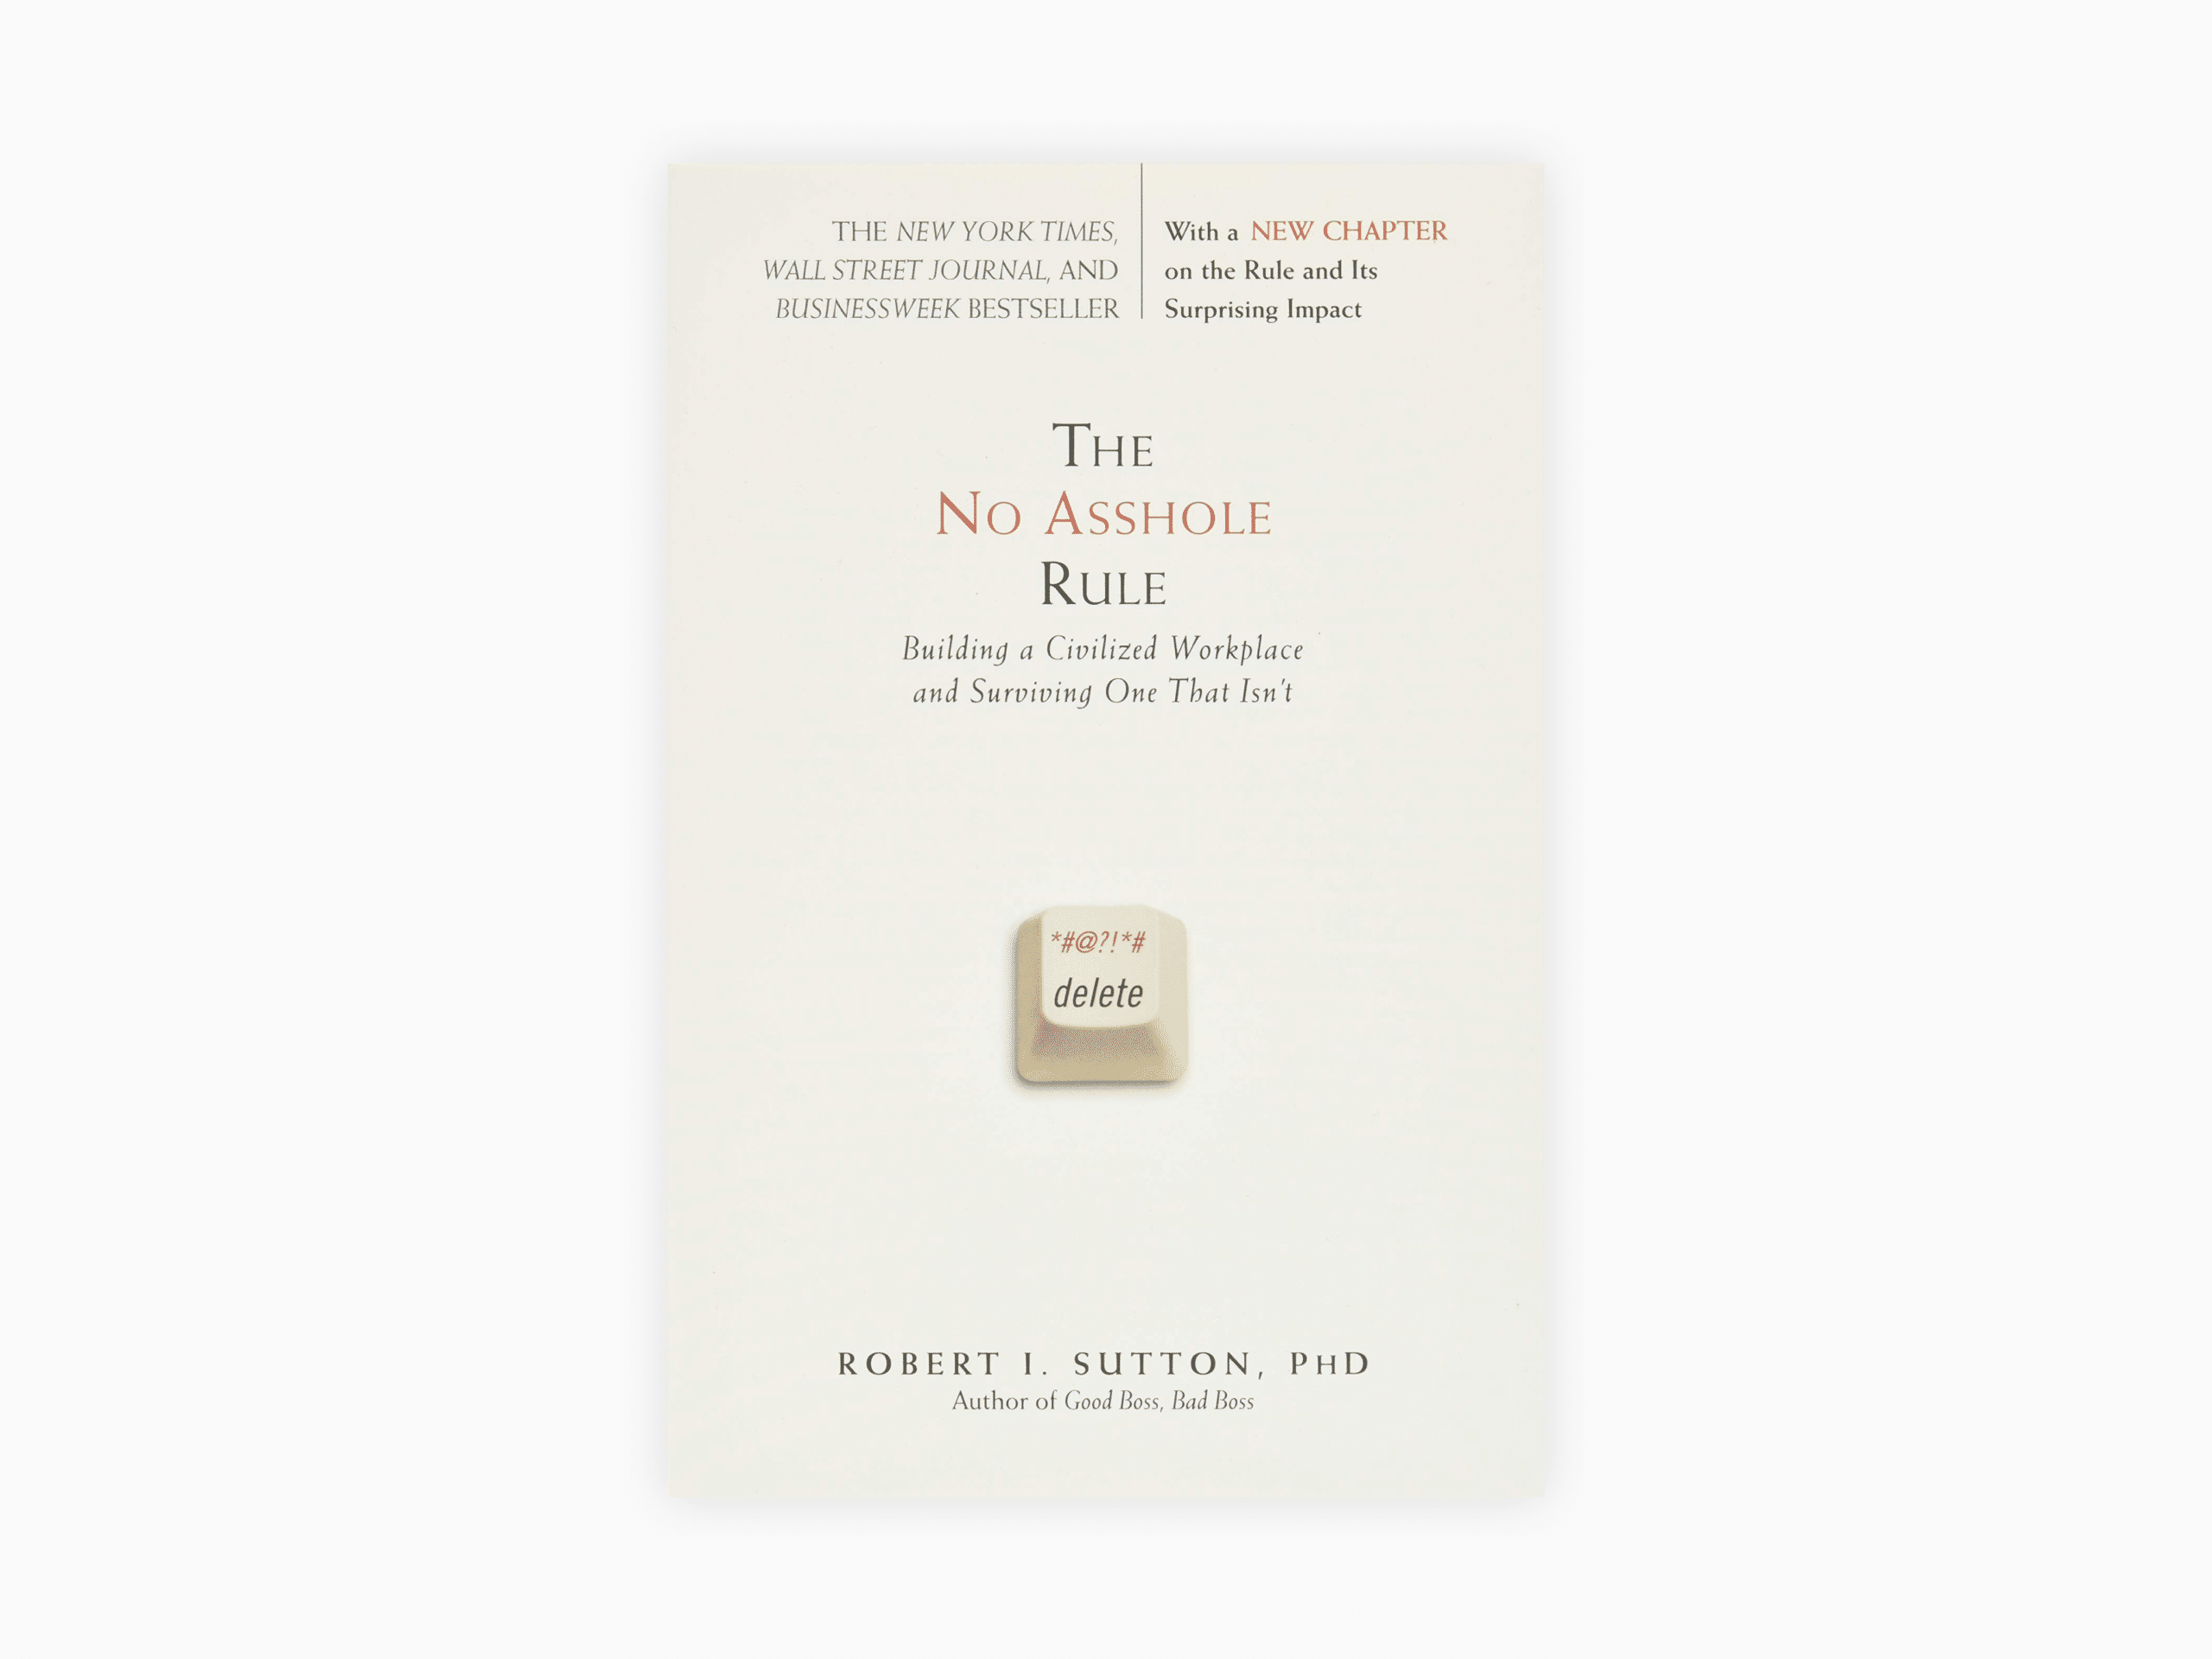 Book cover of the no asshole rule: building a civilized workplace and surviving one that isn't by robert sutton